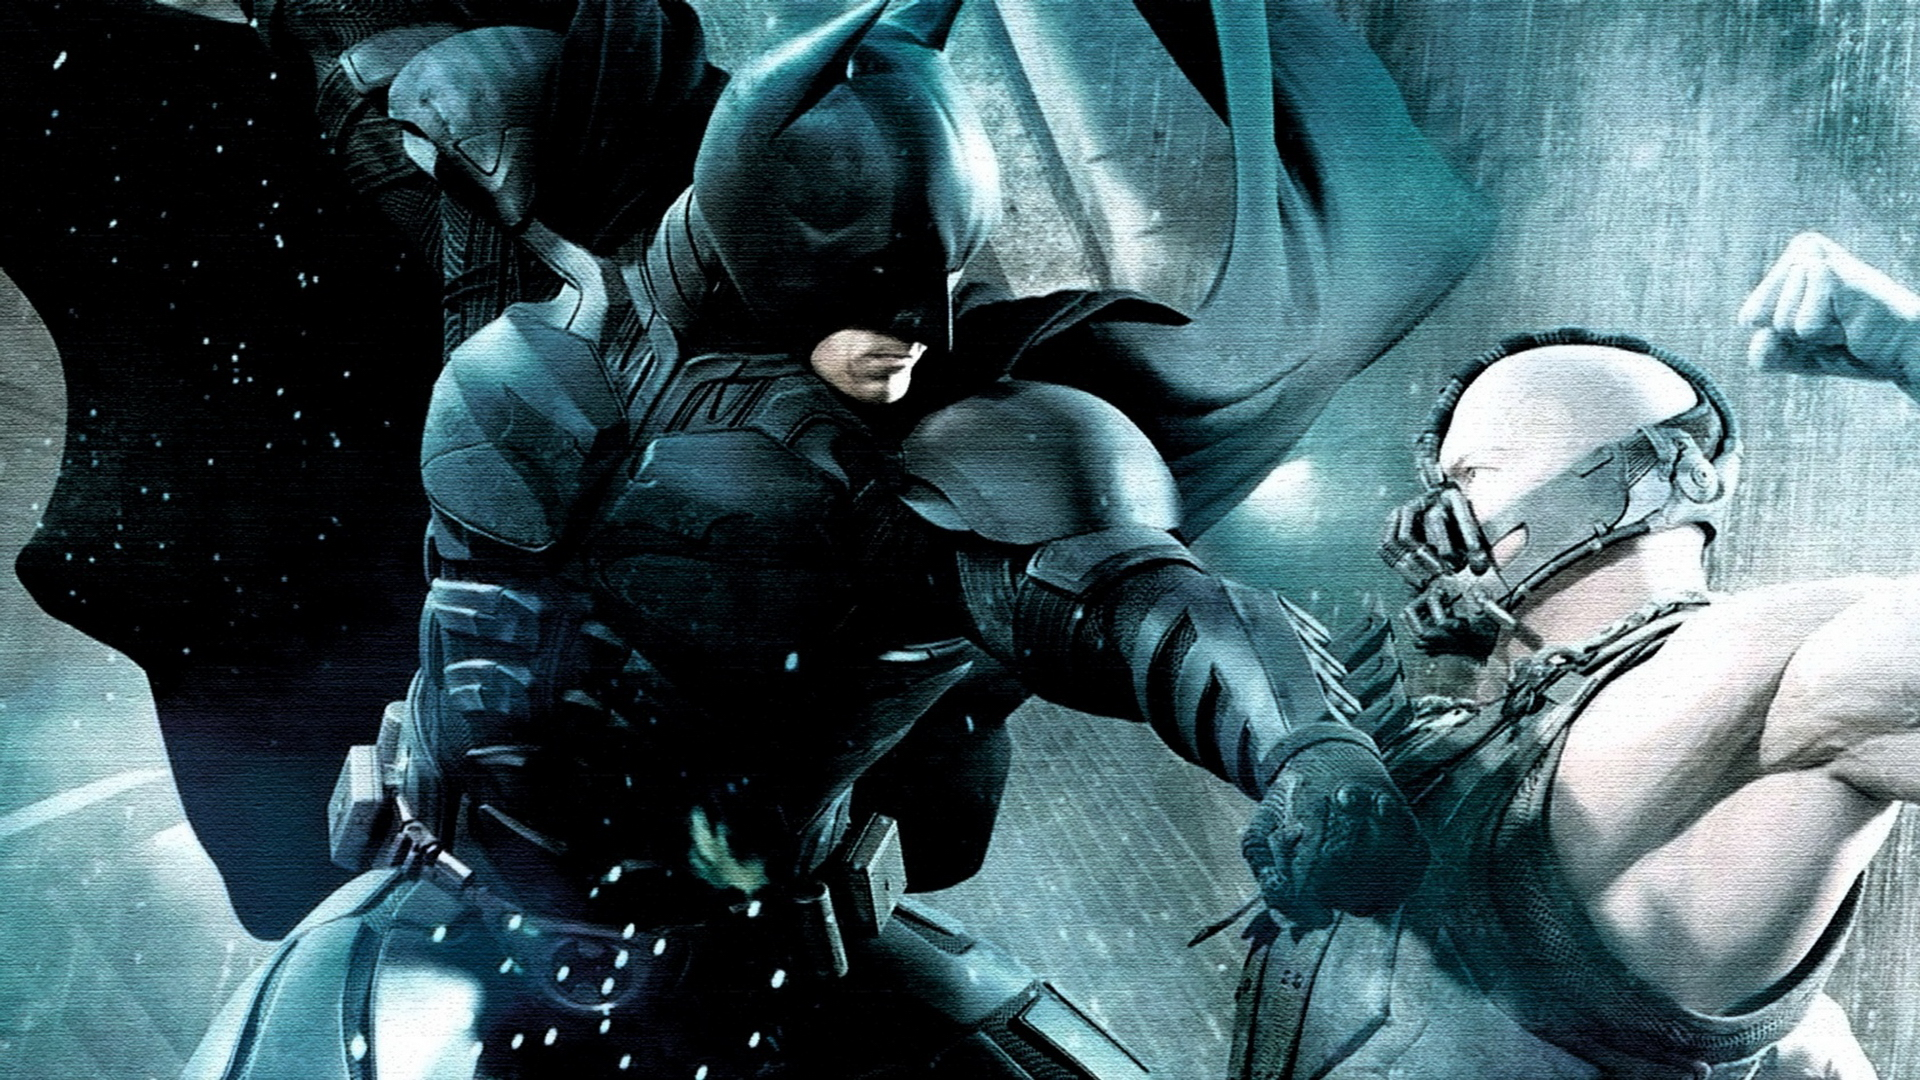 wallpapers desktop knight rises dark backgrounds collection 1920x1080